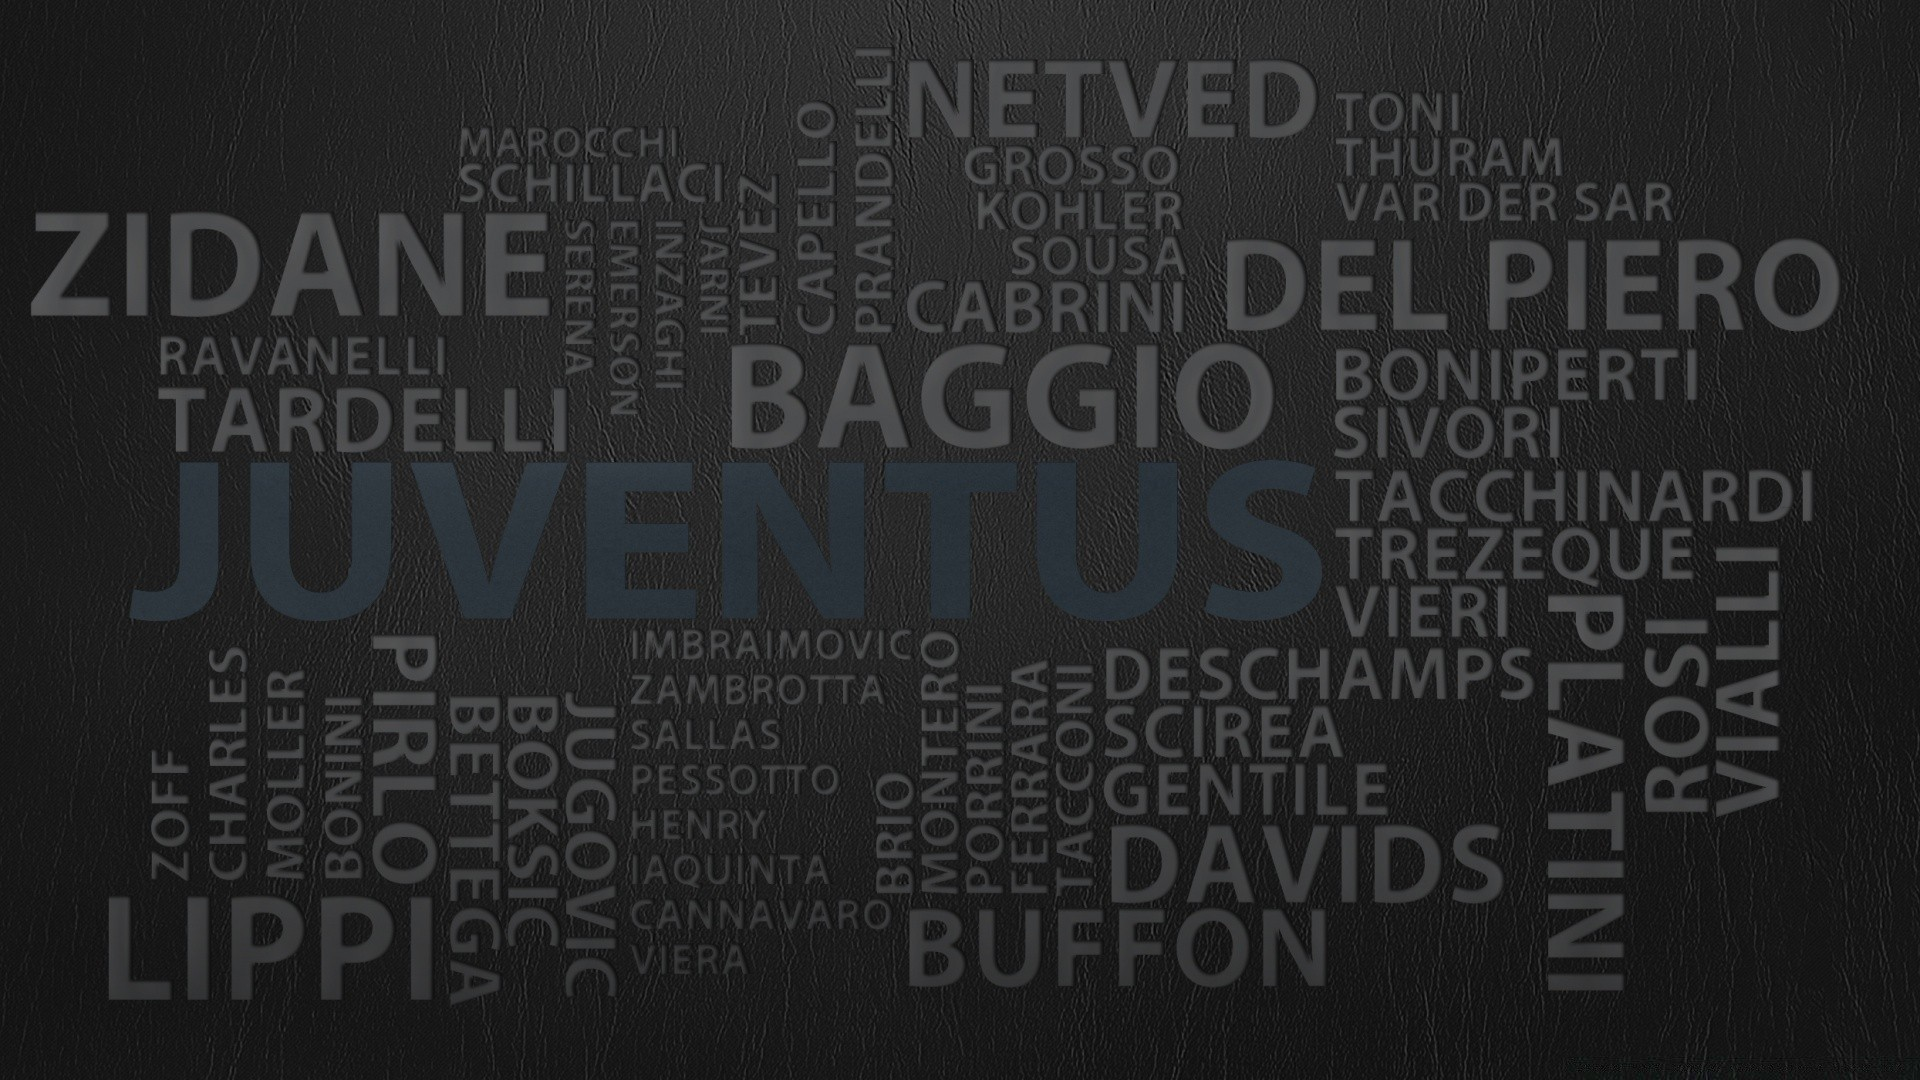 Juventus Iphone Wallpapers For Free